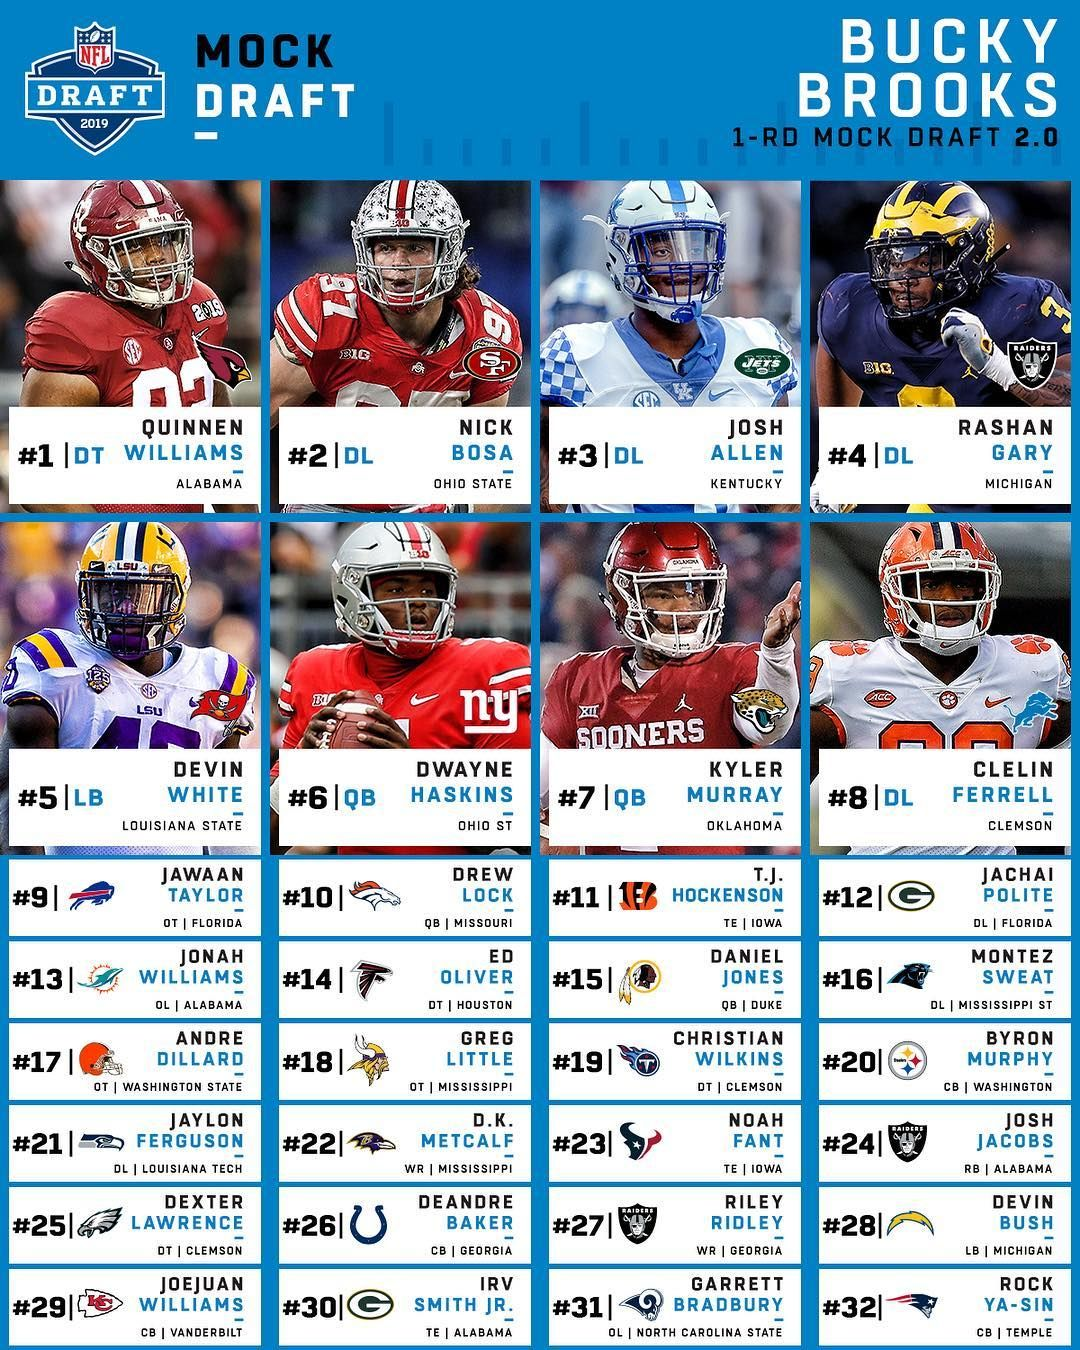 Nfl Bigplayfootball S 2019 Mock Draft 2 0 Who Does Your Team